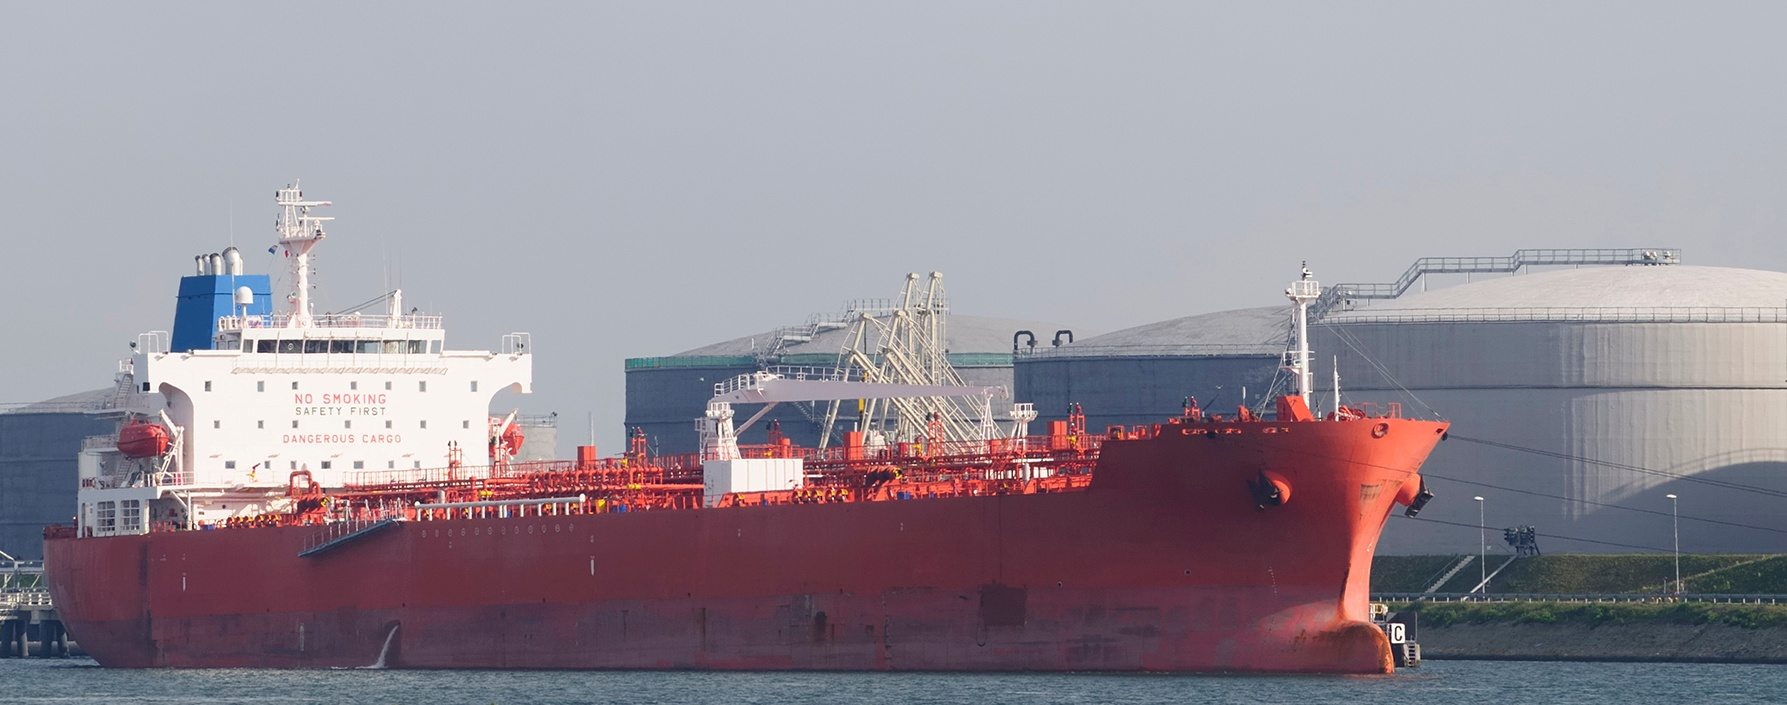 Cargo ship near oil storage